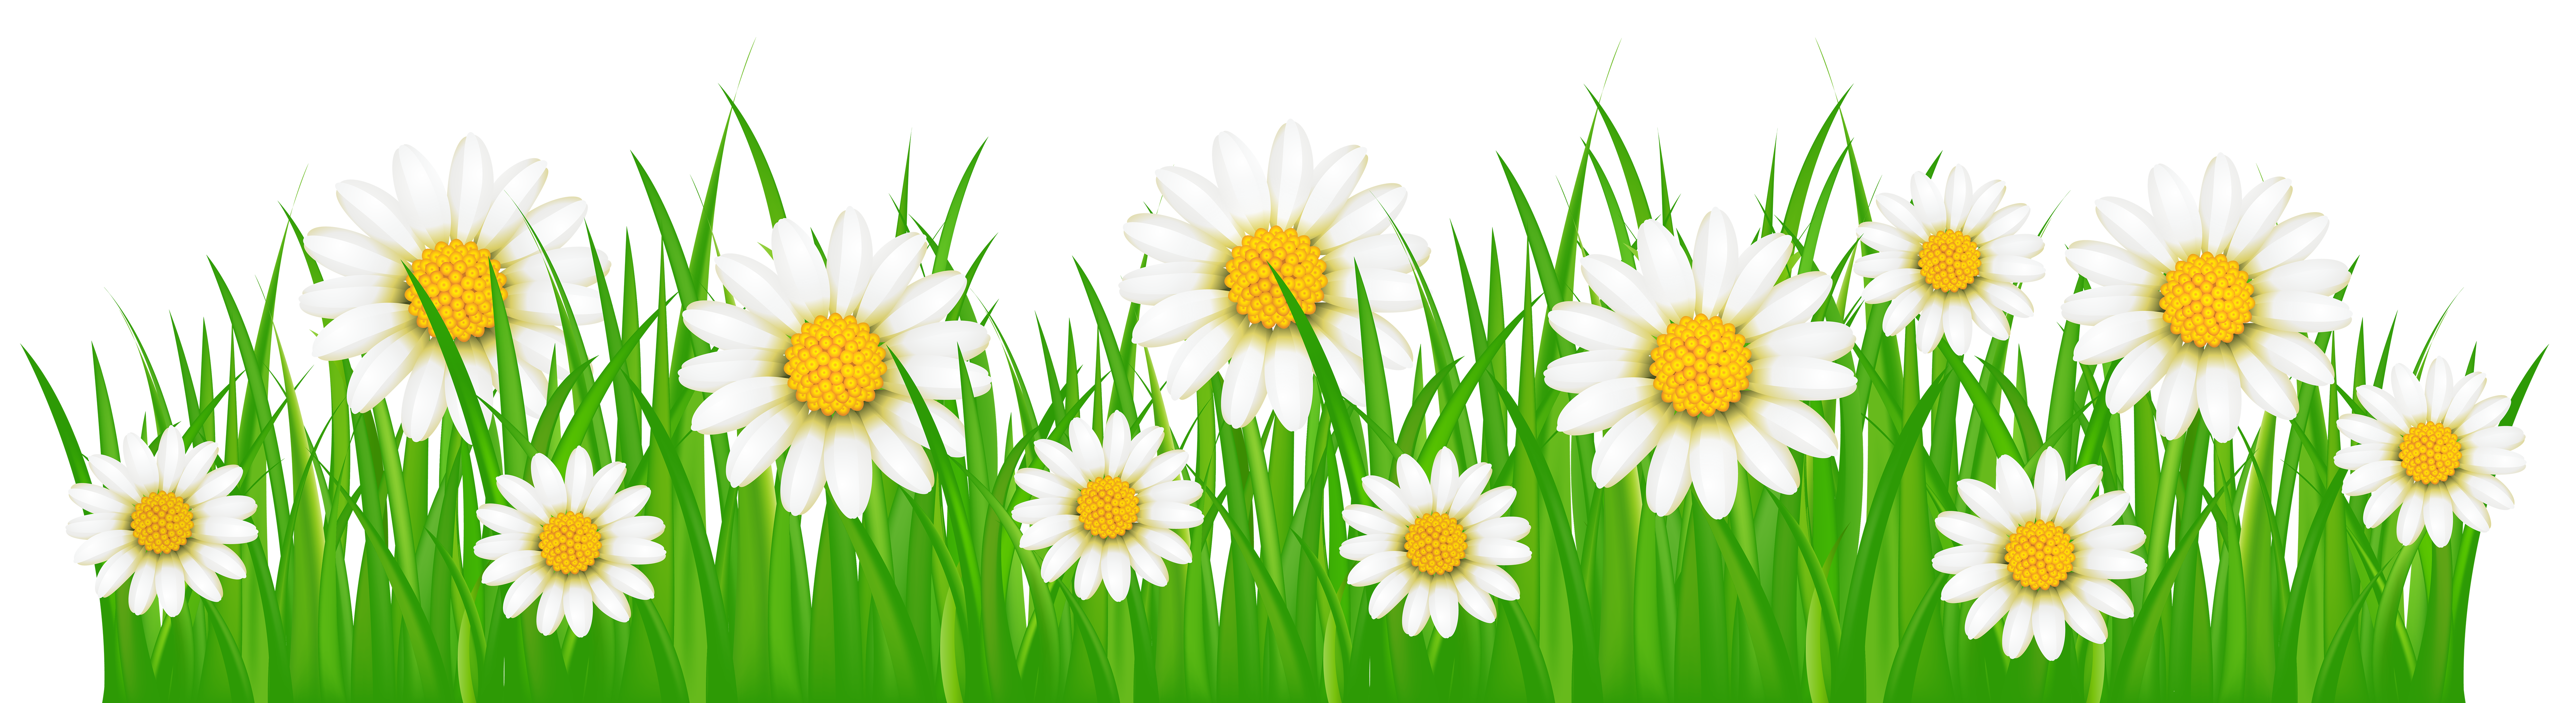 Grass flowers png. Ground with white clip